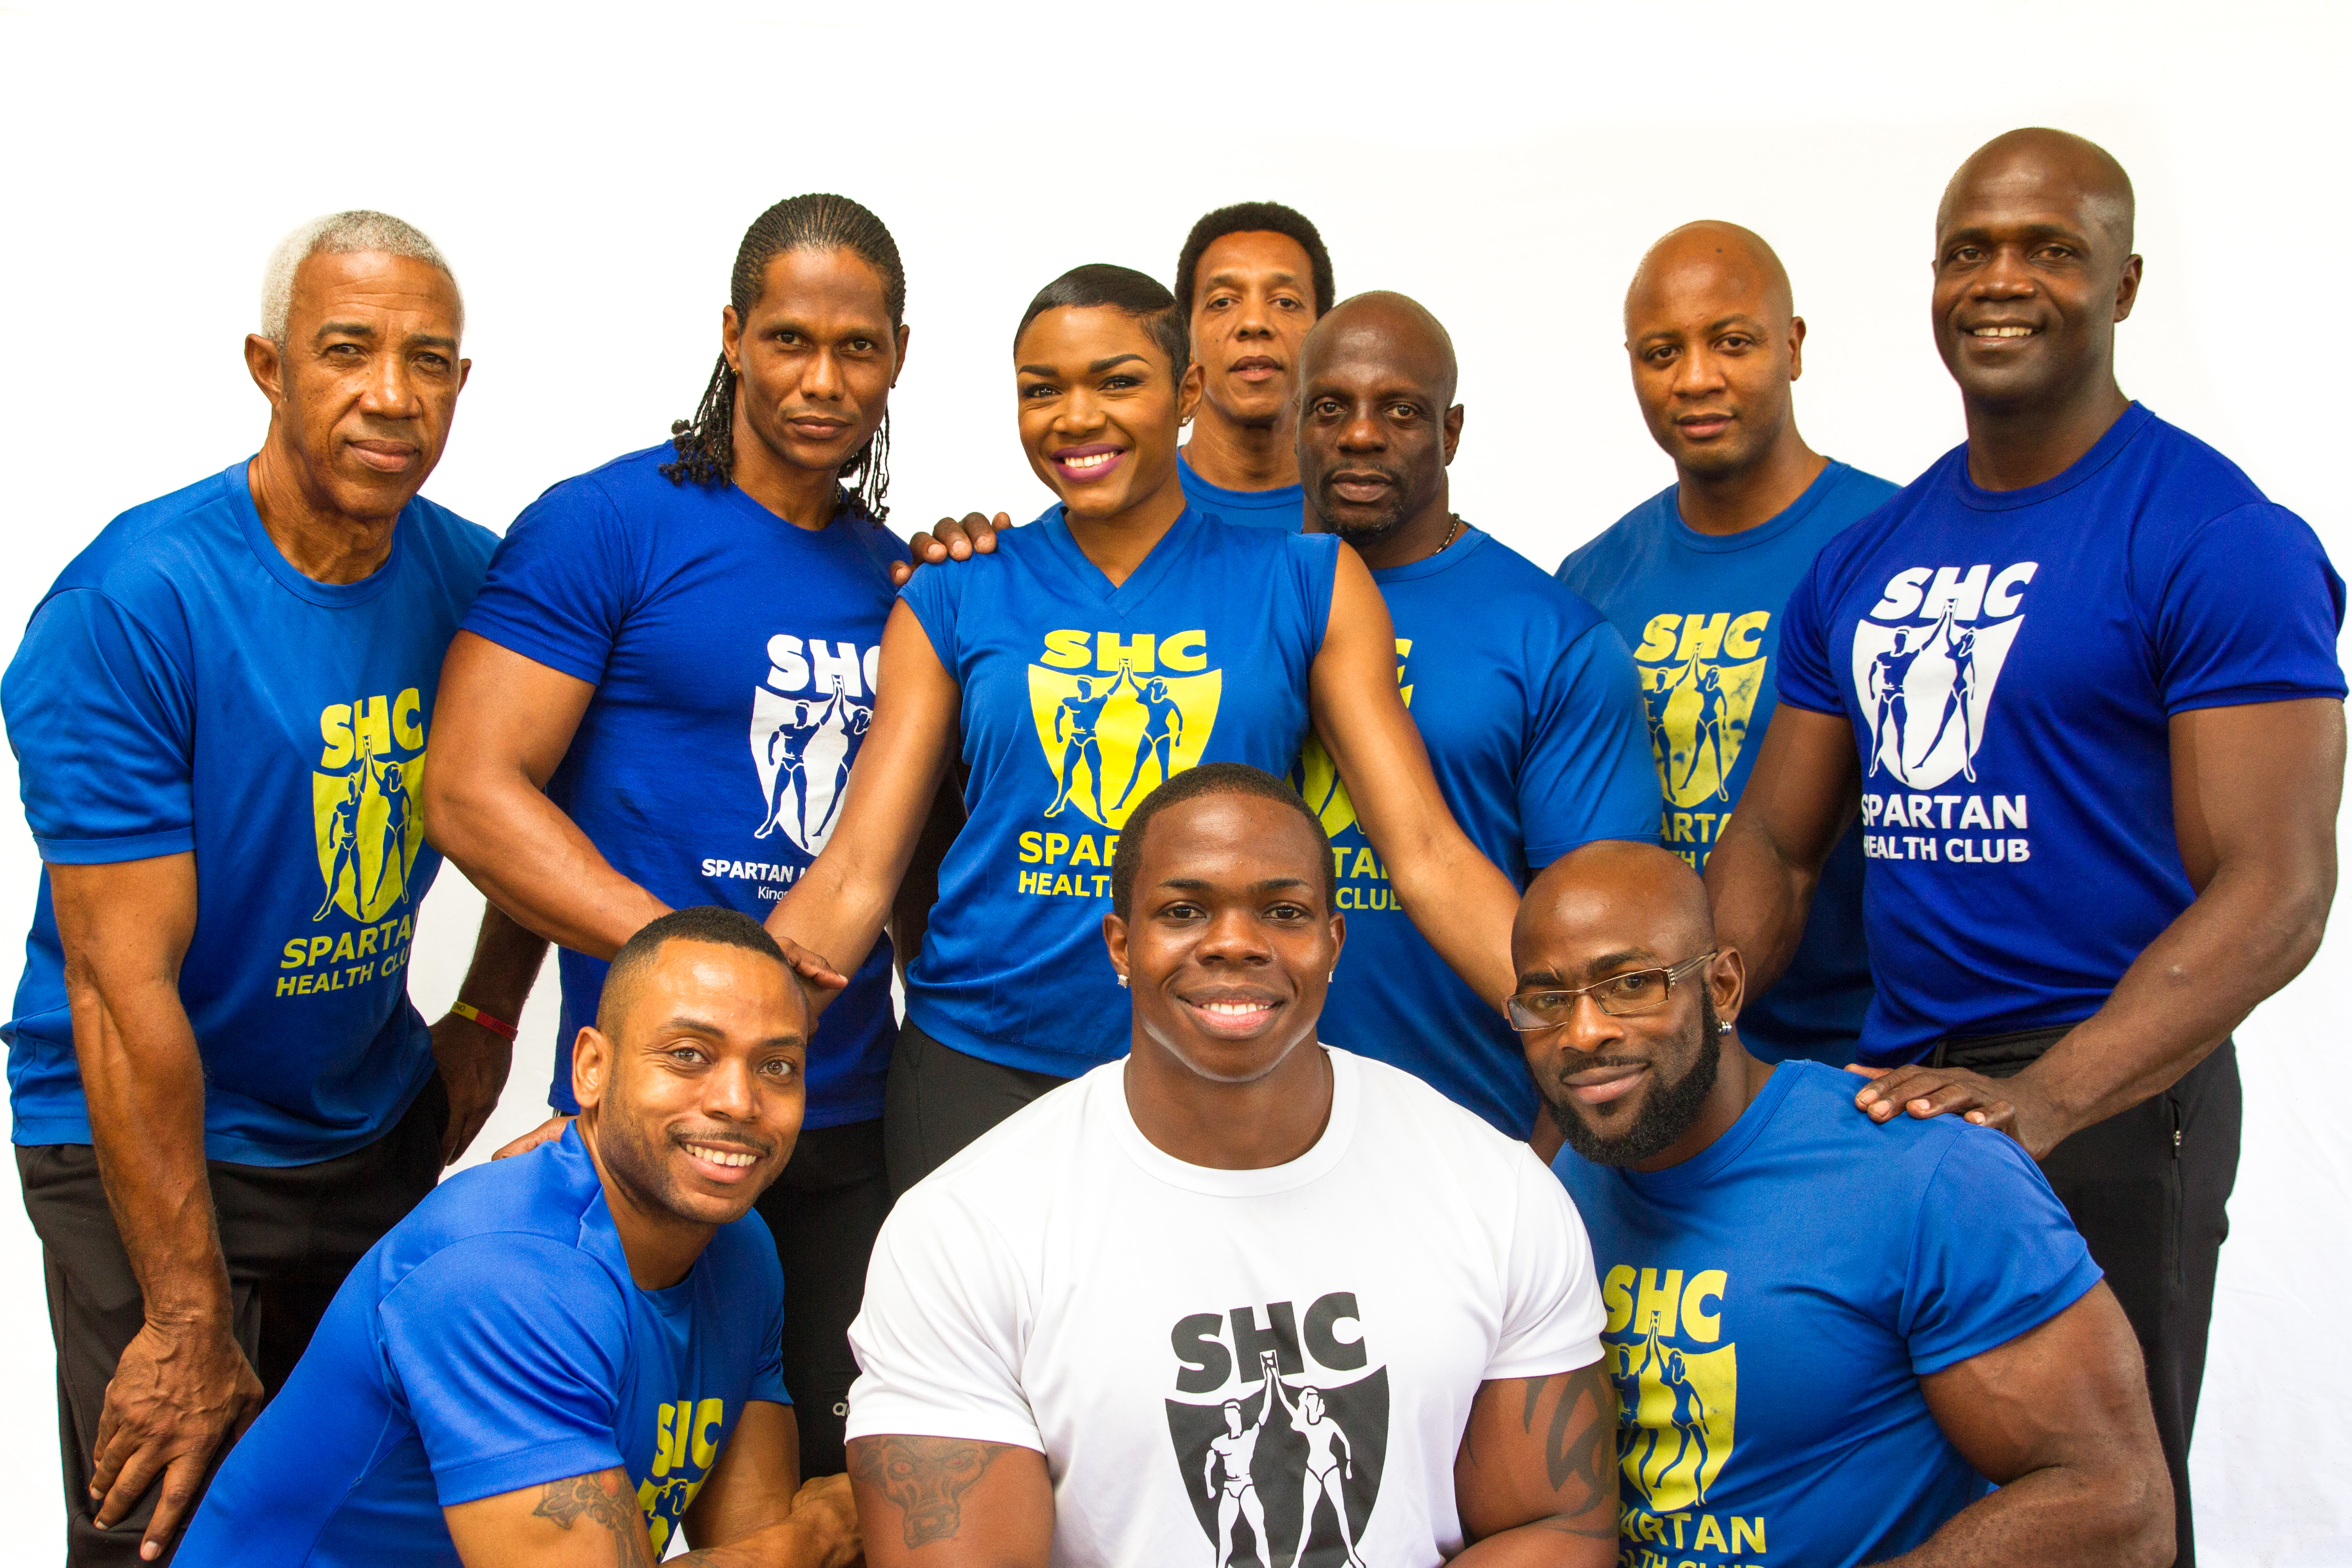 The team at Spartan Health Club